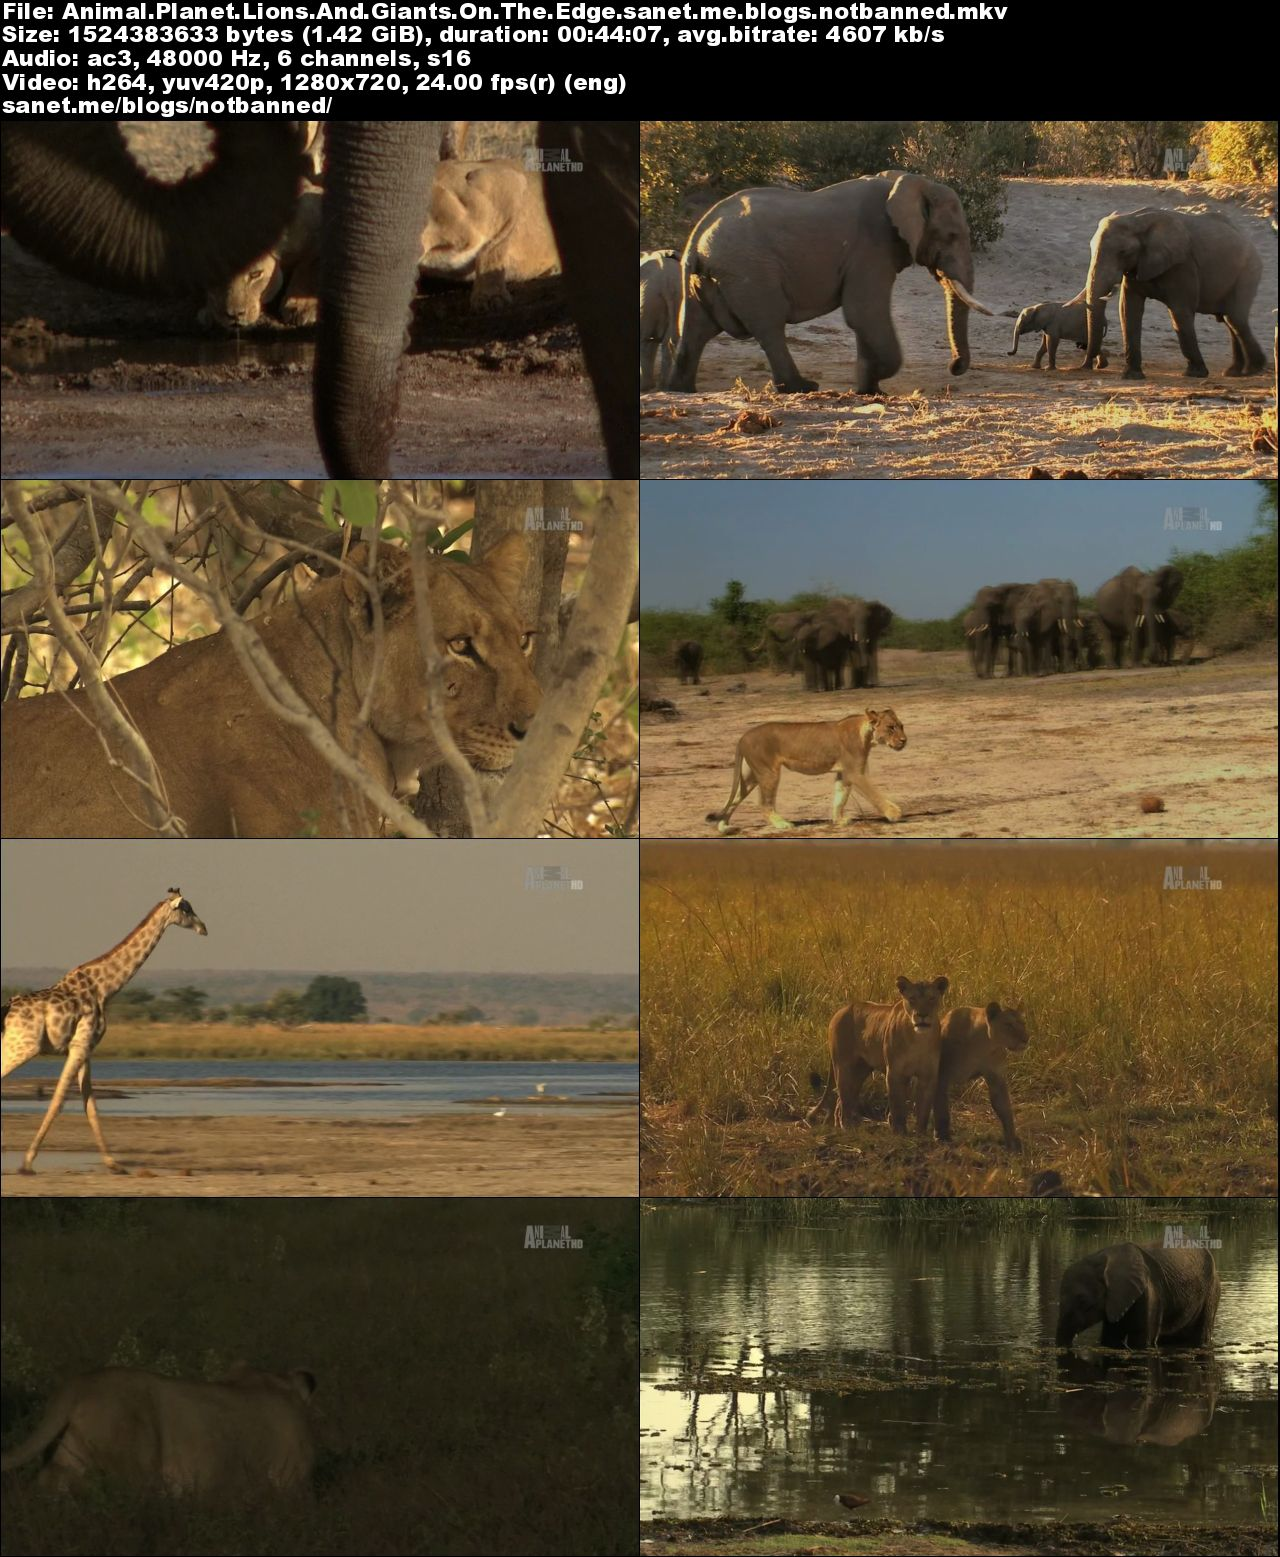 Download Discovery Channel - Animal Planet: Lions and Giants (2015